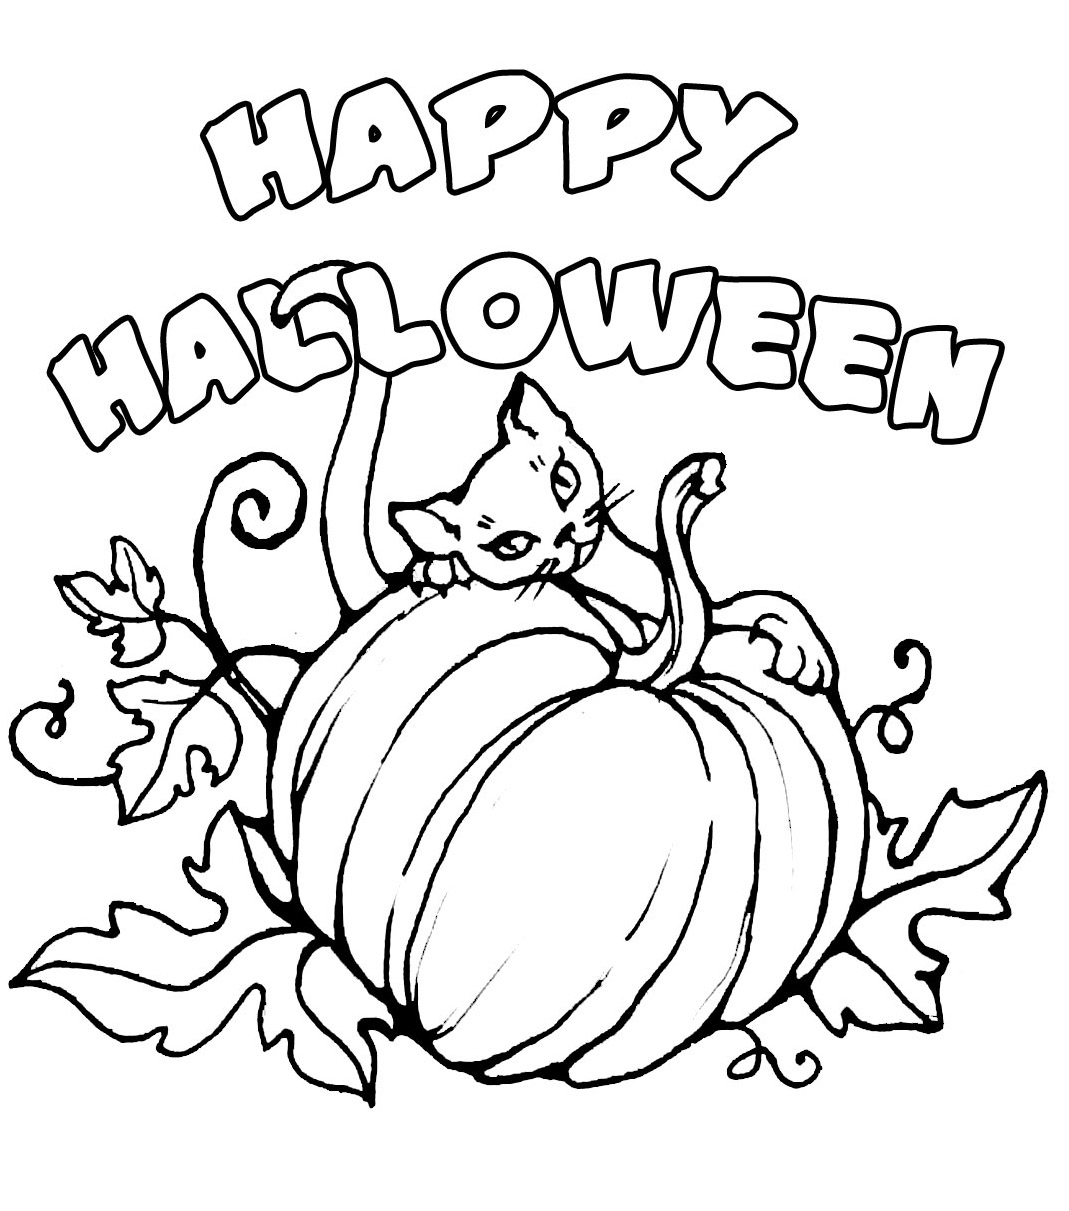 Happy Halloween's Day 2020 Wishes Quotes Messages Songs